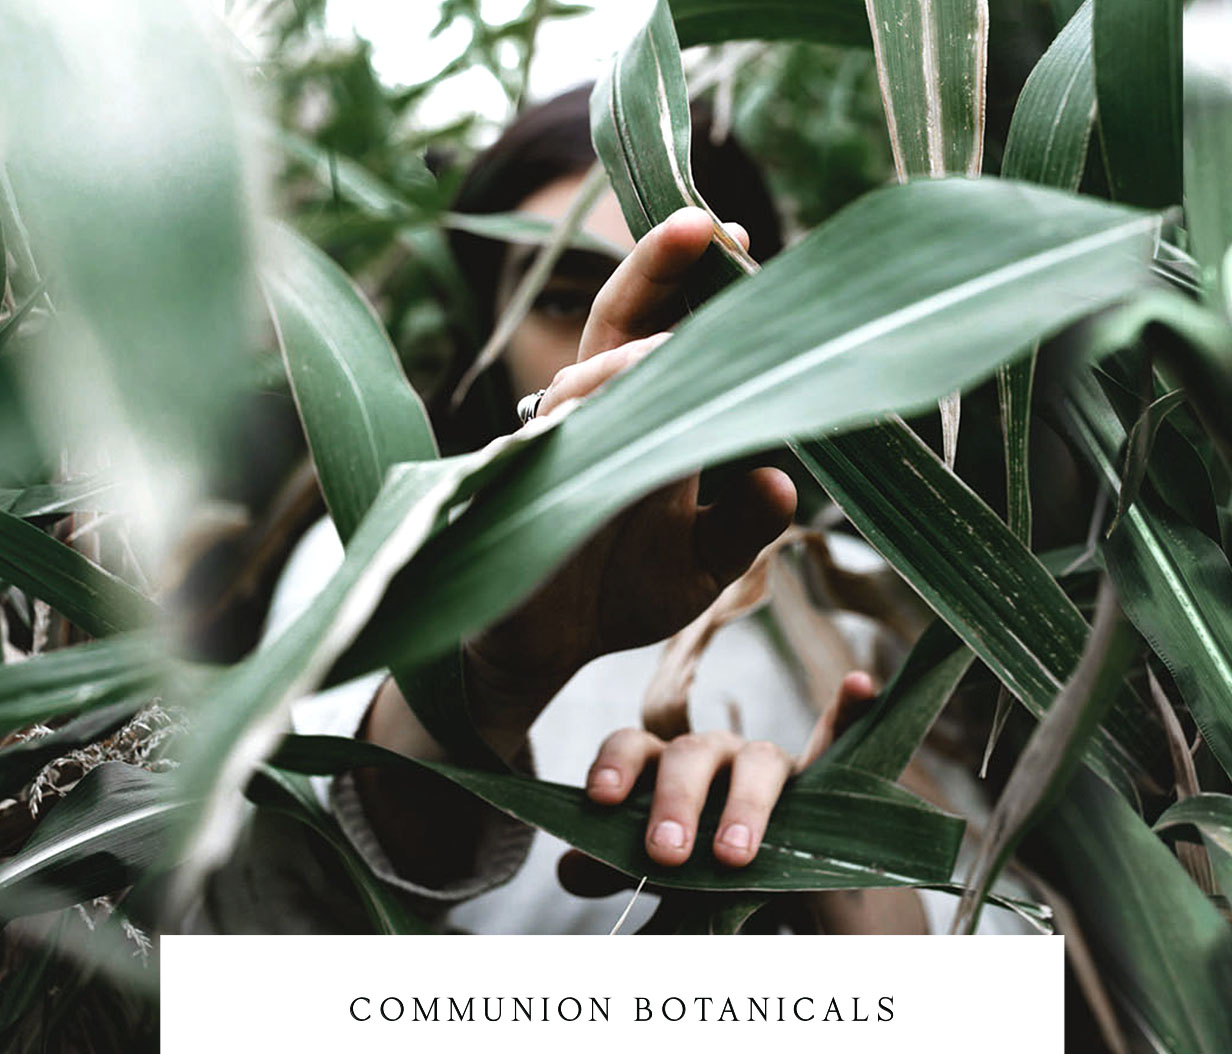 Communion Botanicals  Branding, Collateral, Packaging, Photography